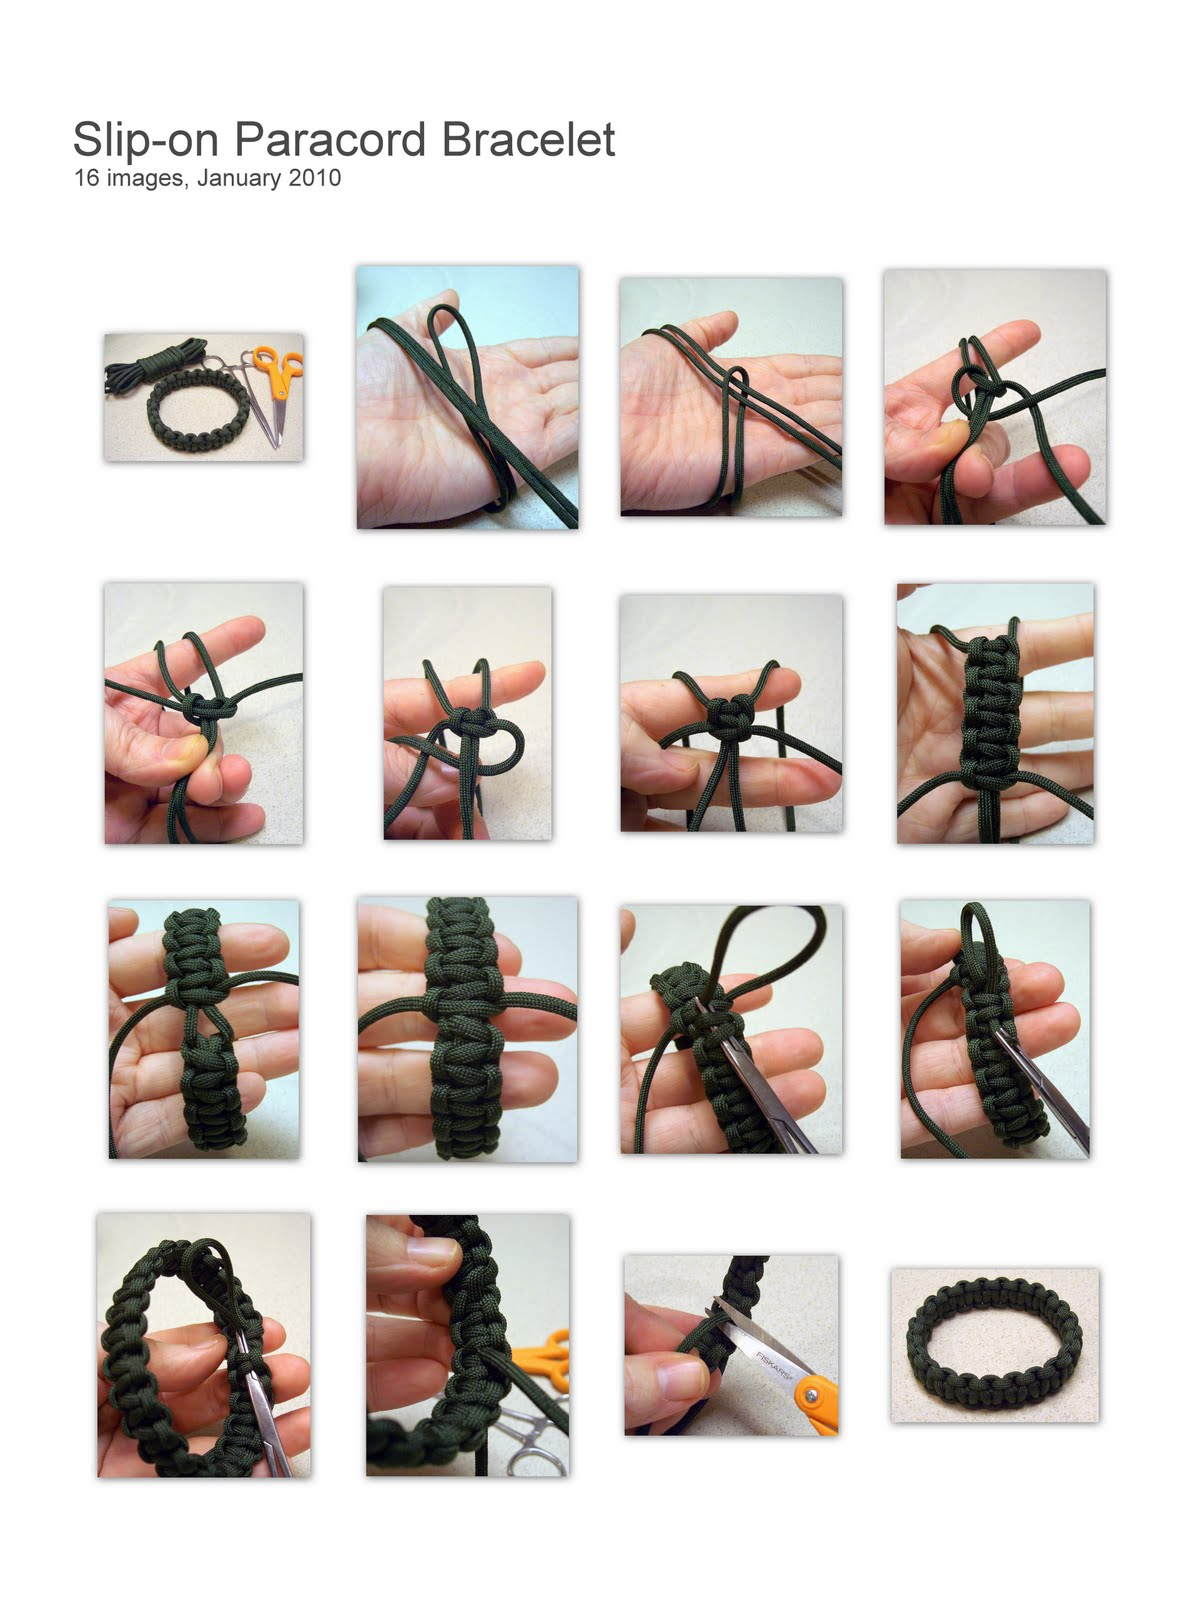 Stormdrane's Blog: Slip-on Paracord Bracelet